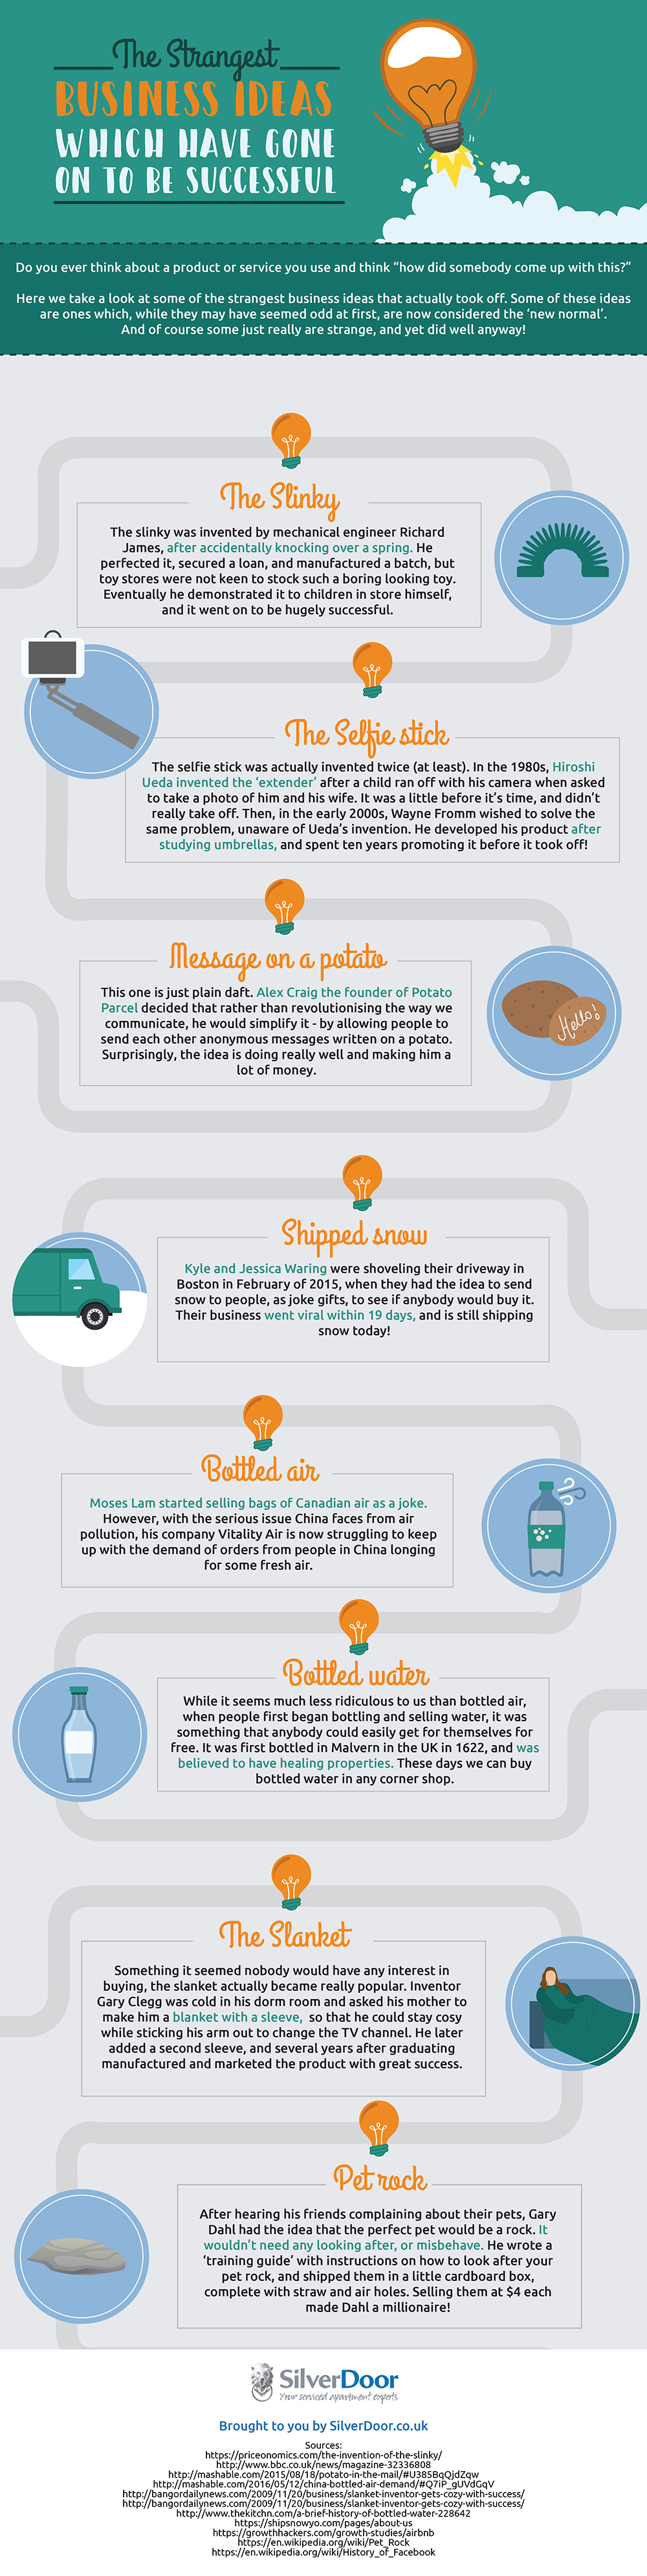 Strange but Successful Business Ideas that Hit the Jackpot - Infographic